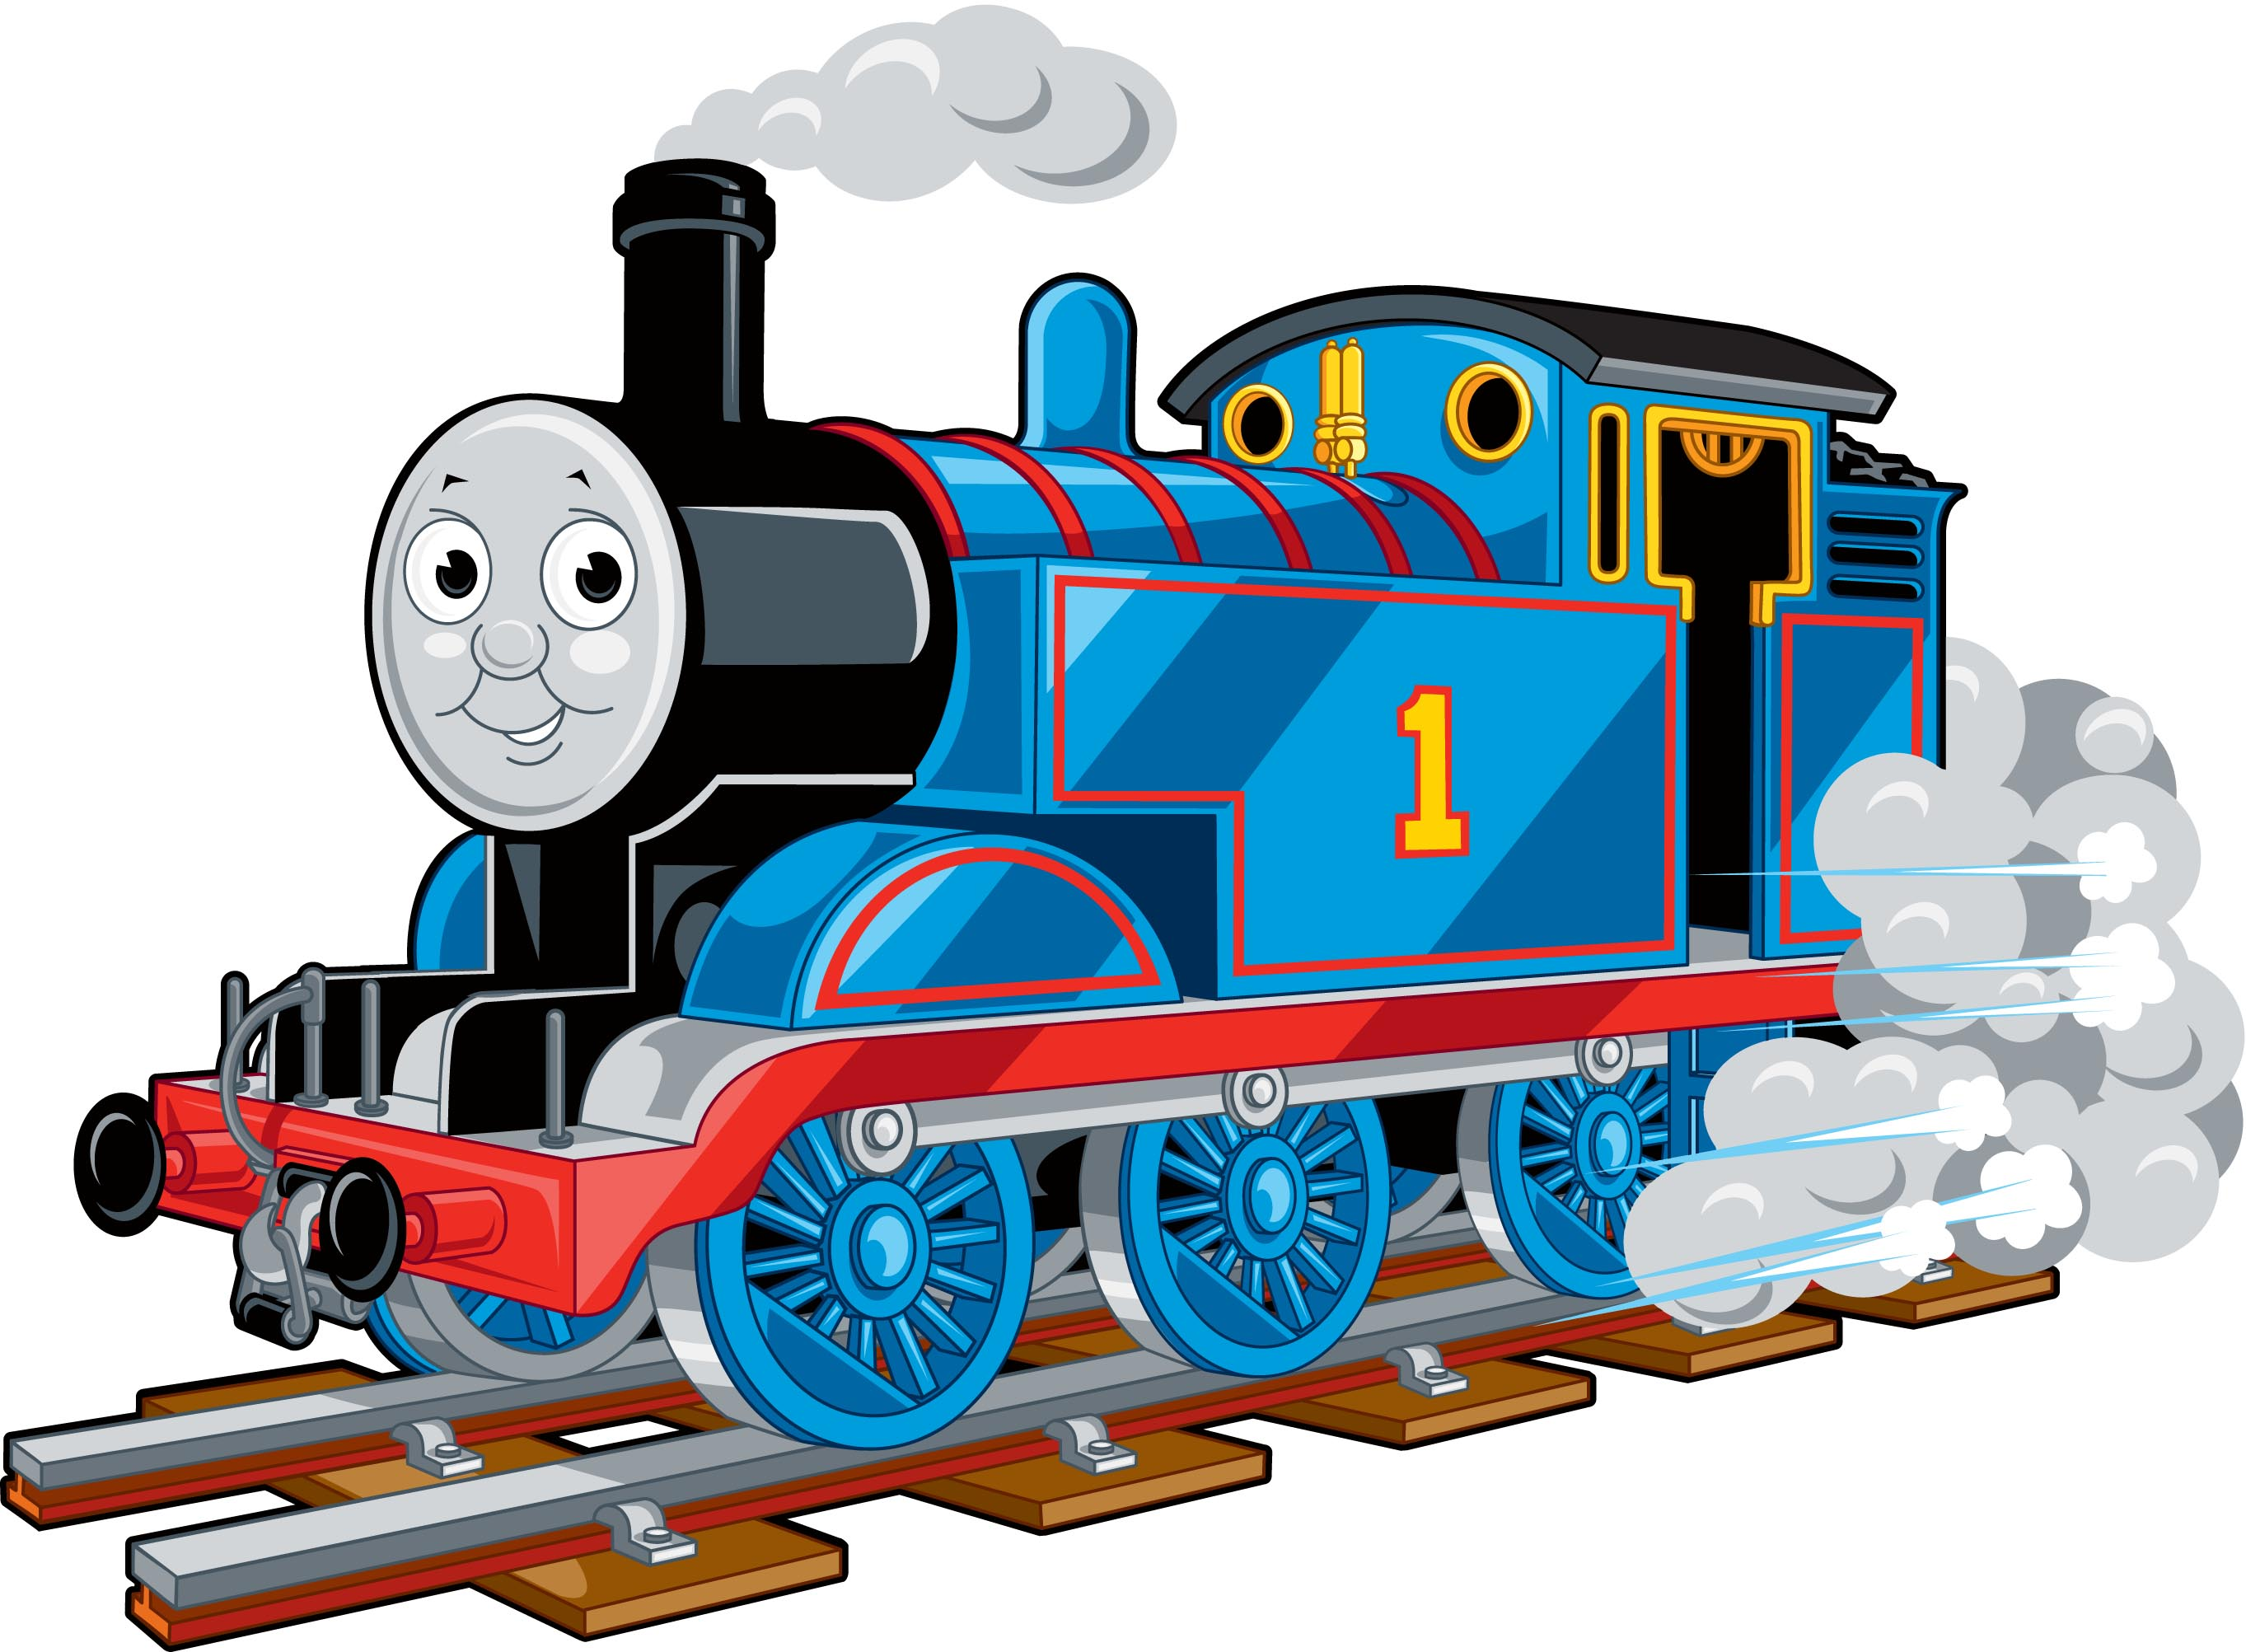 Thomas the train clipart images vector transparent library 18+ Thomas The Train Clipart | ClipartLook vector transparent library